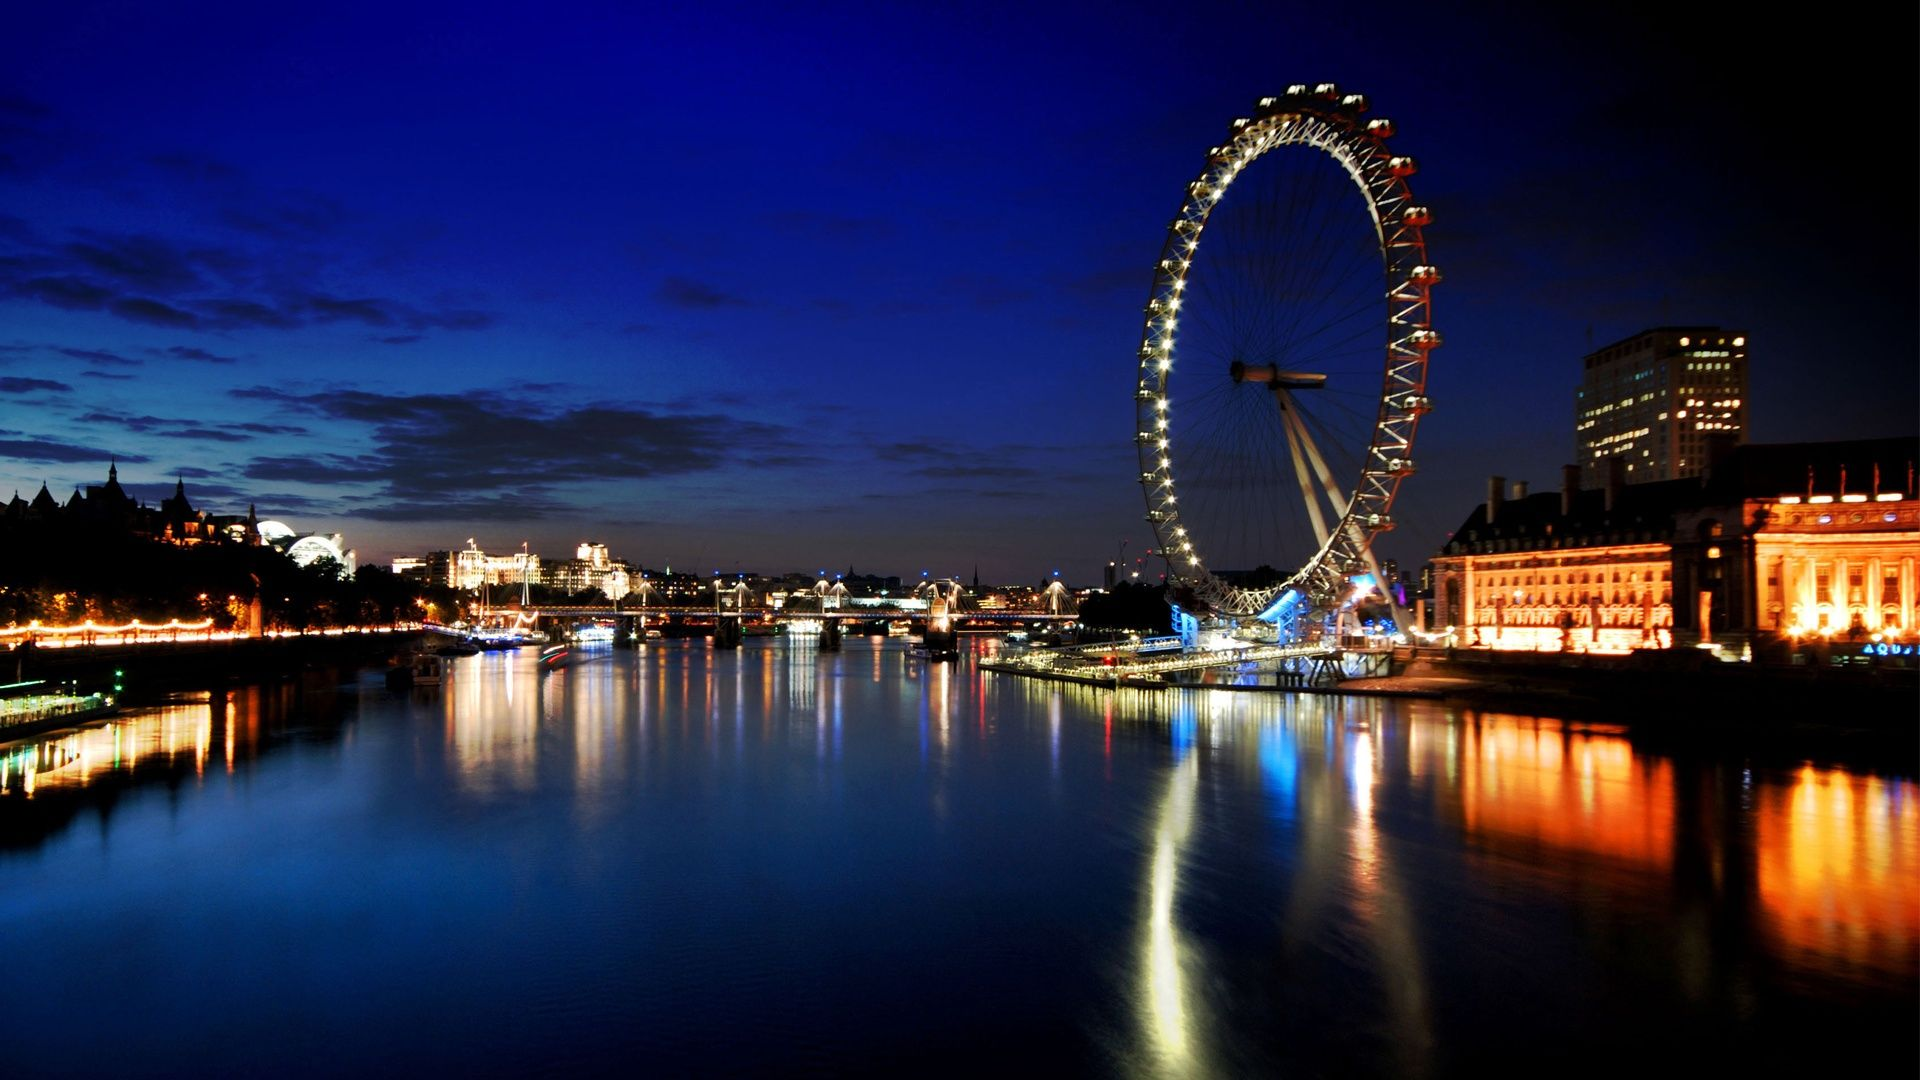 London Skyline At Night Hd Desktop Wallpaper Widescreen Hd